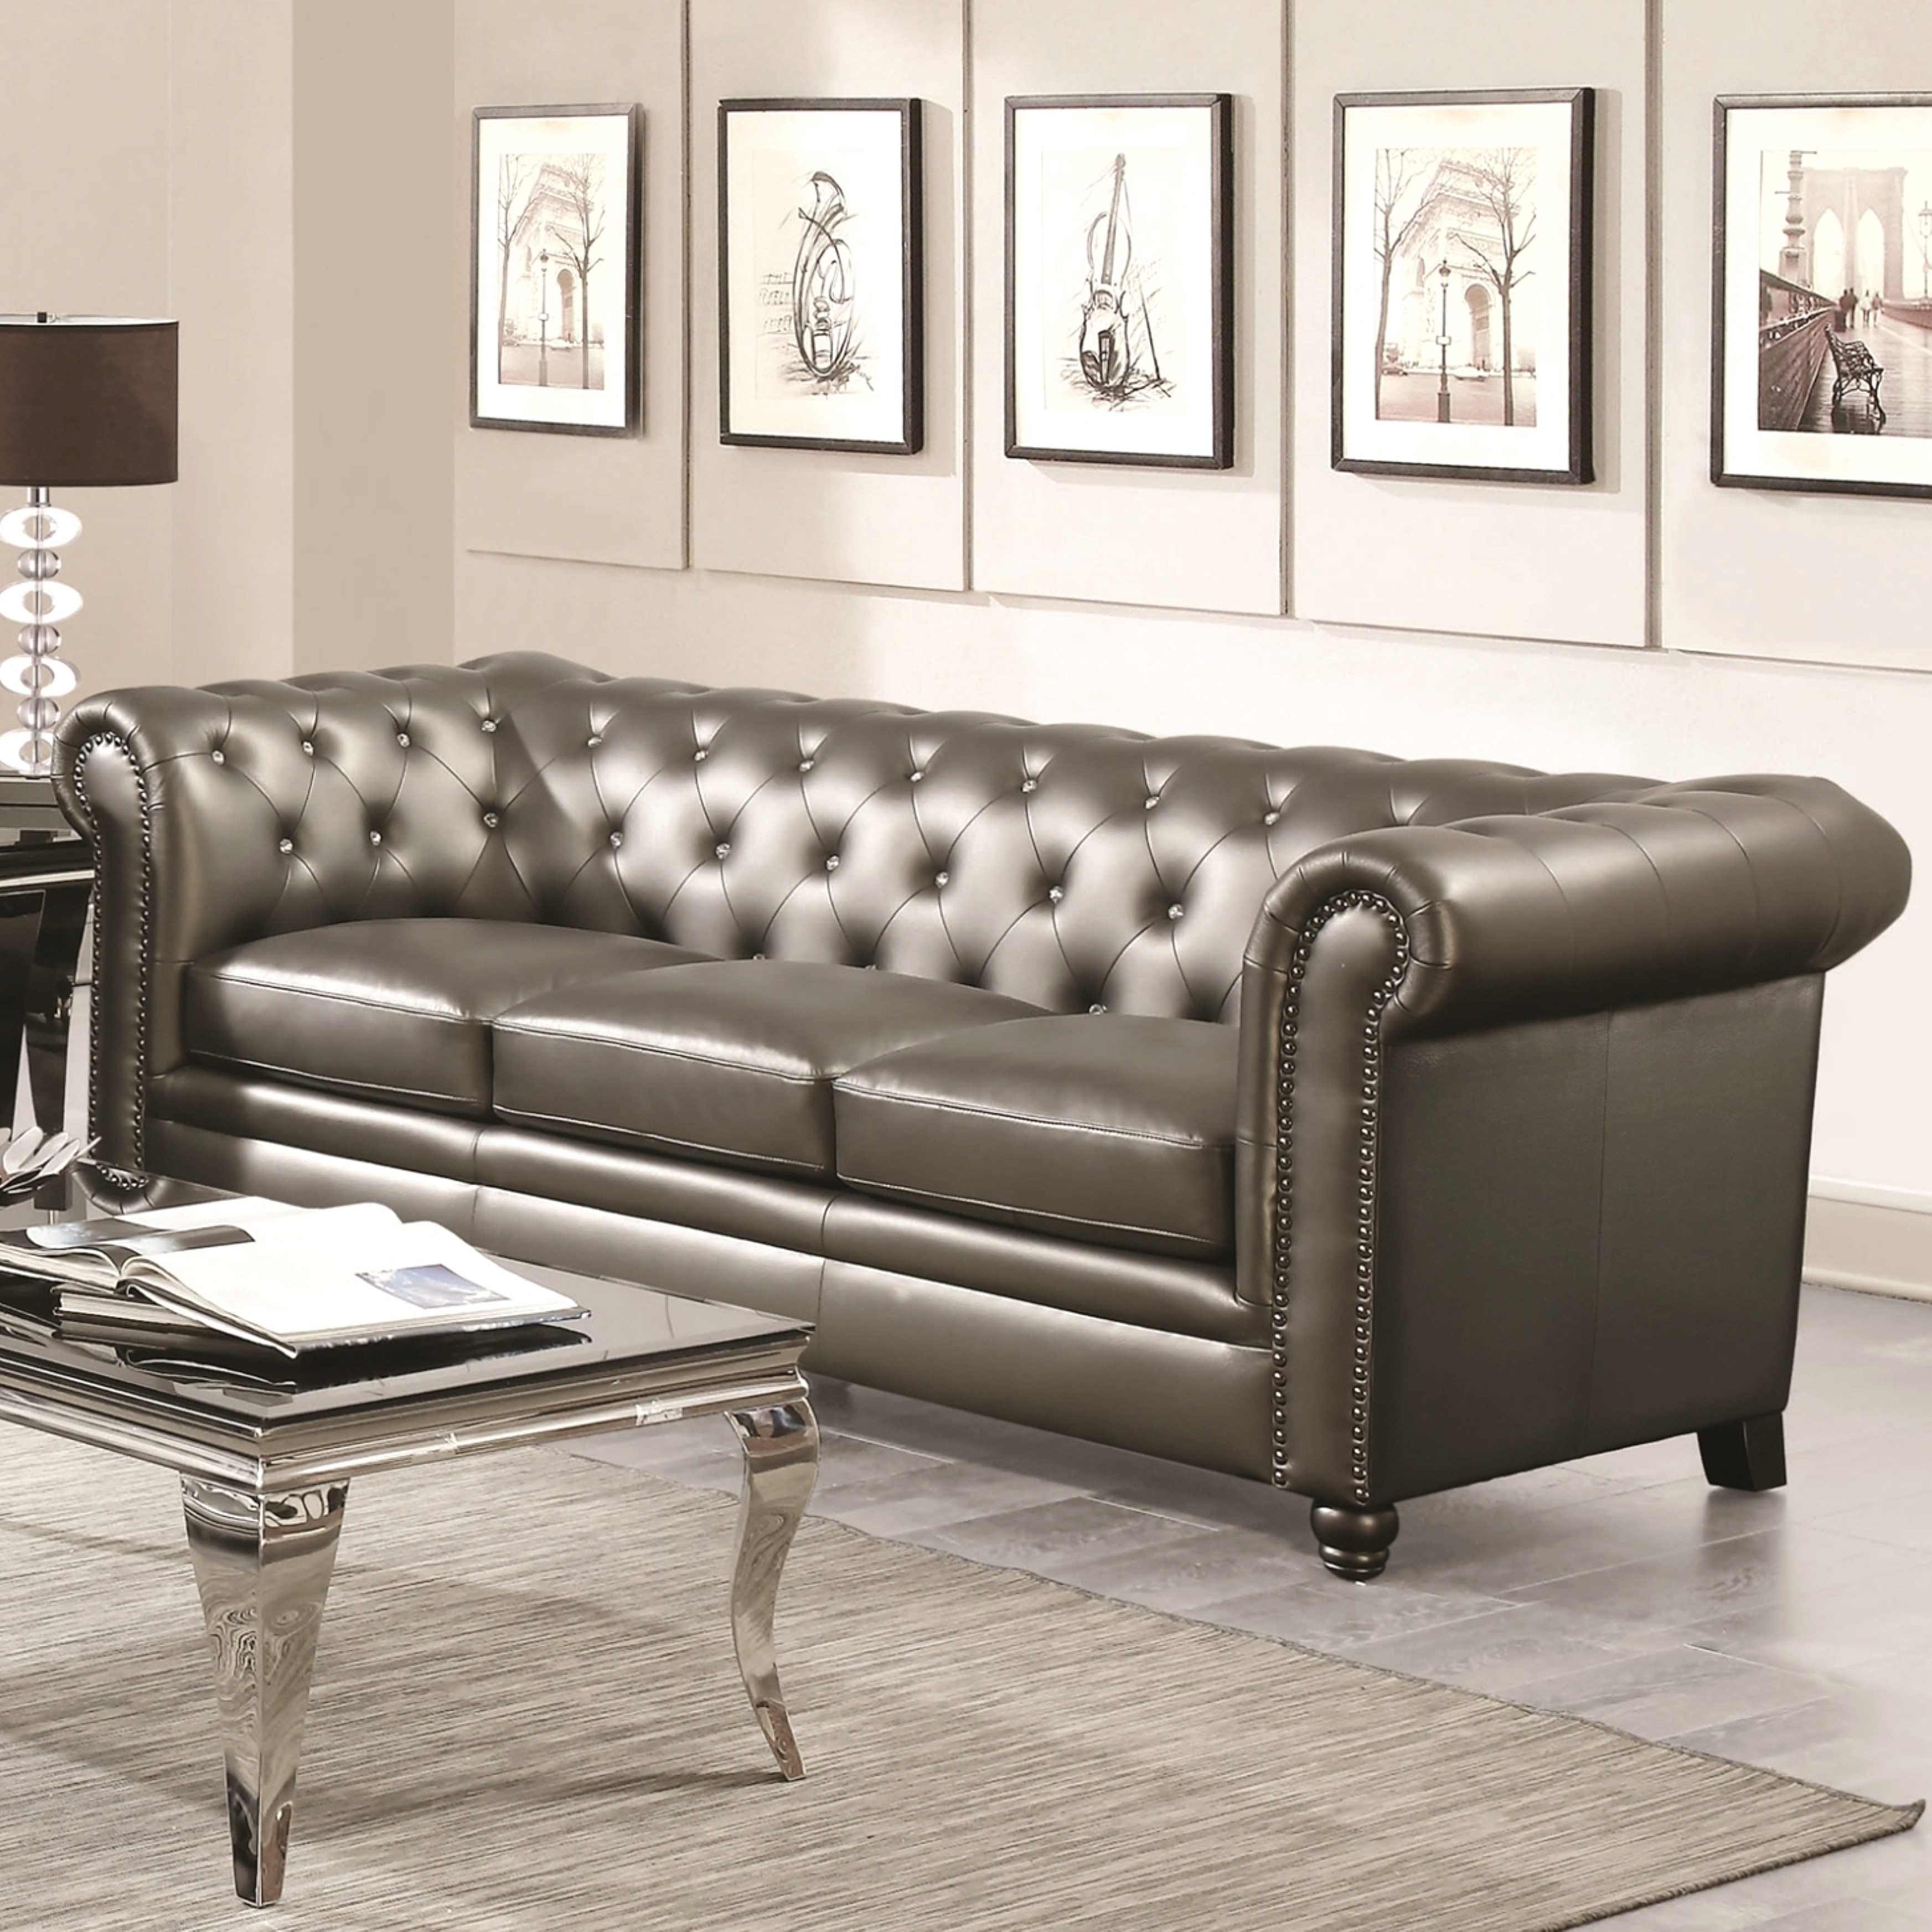 Shop Royal Mid-Century Sofa with Crystal Button Tufting Design and ...